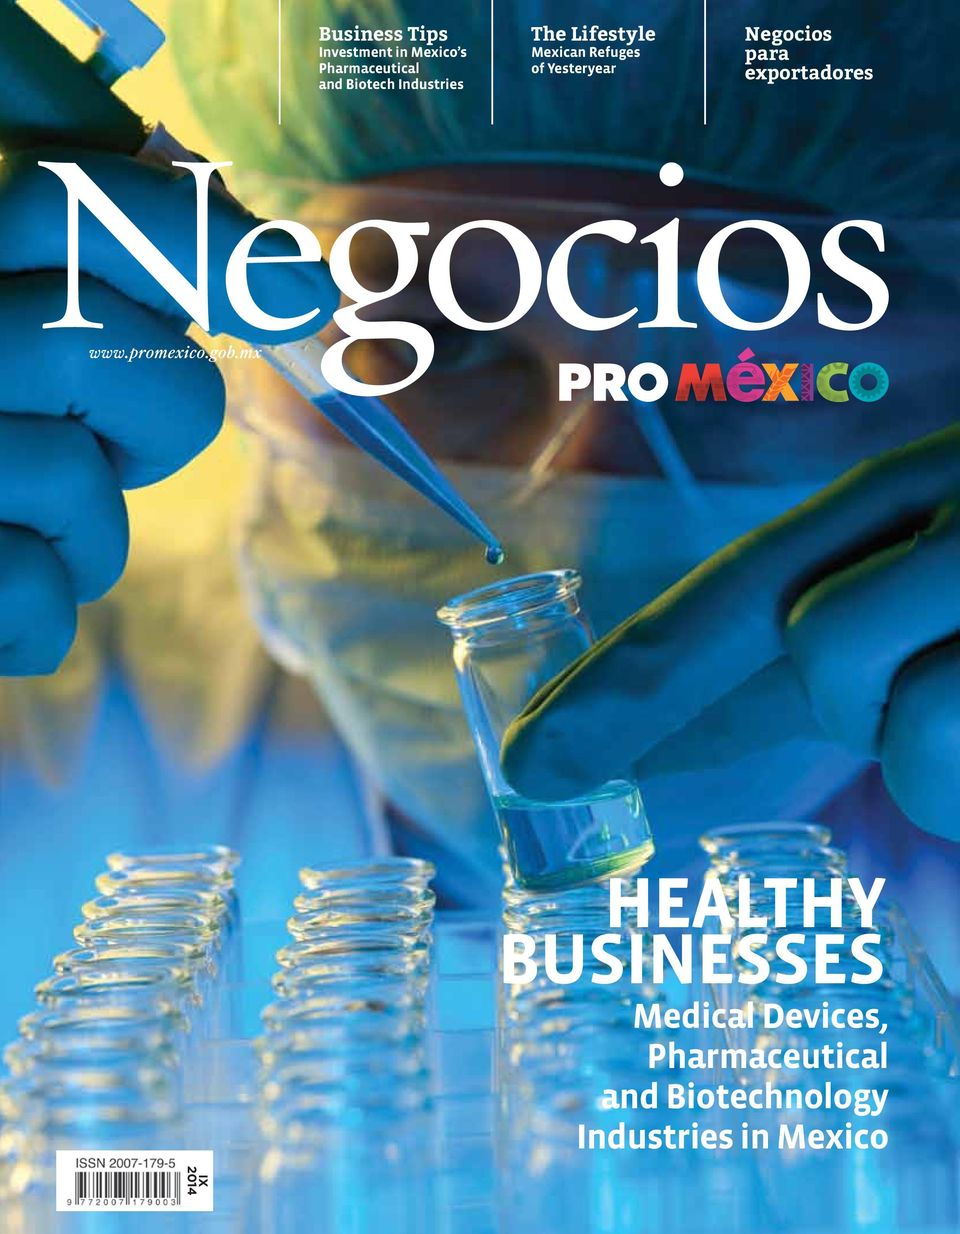 Yesteryear Negocios para exportadores HEALTHY BUSINESSES